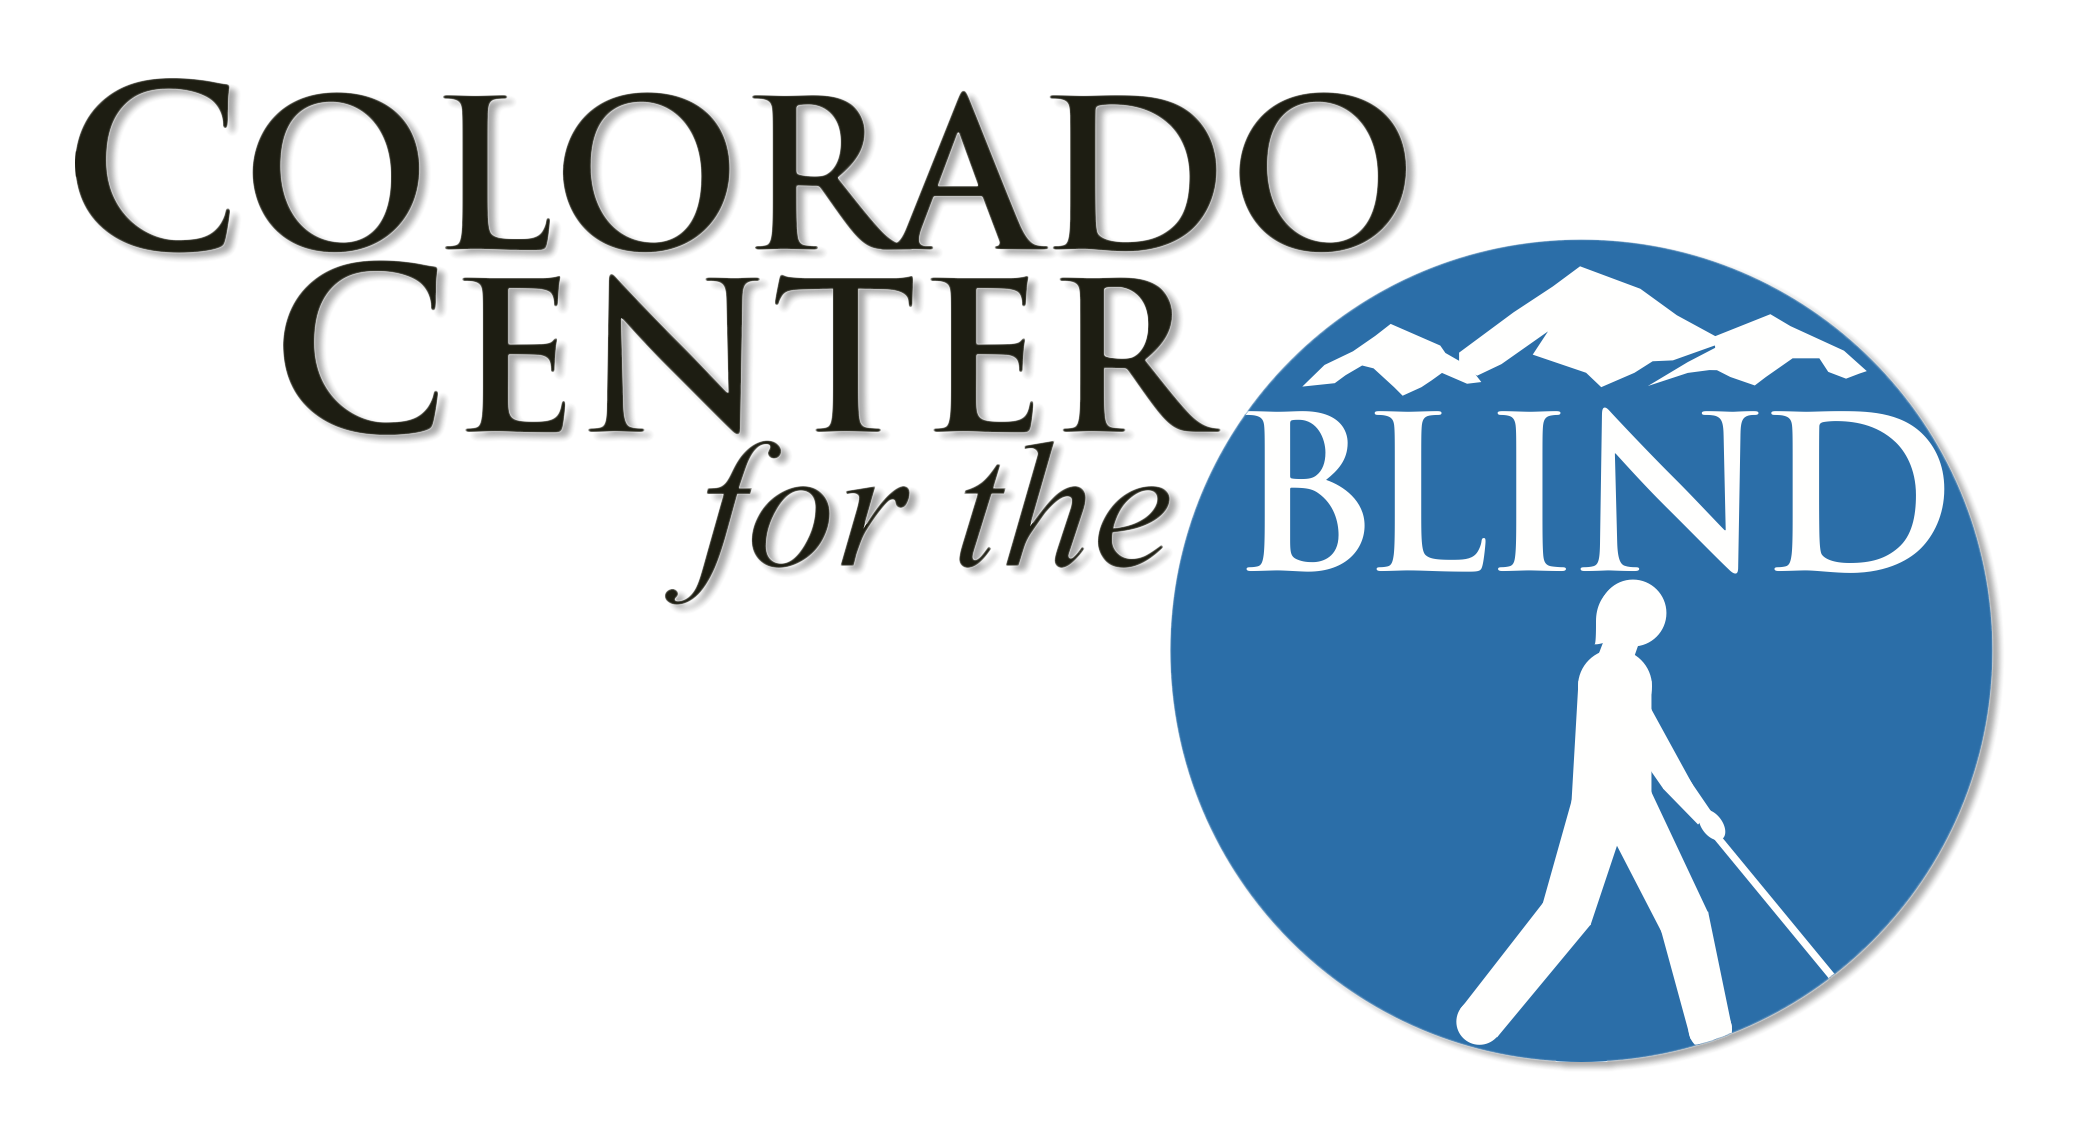 Colorado Center for the Blind